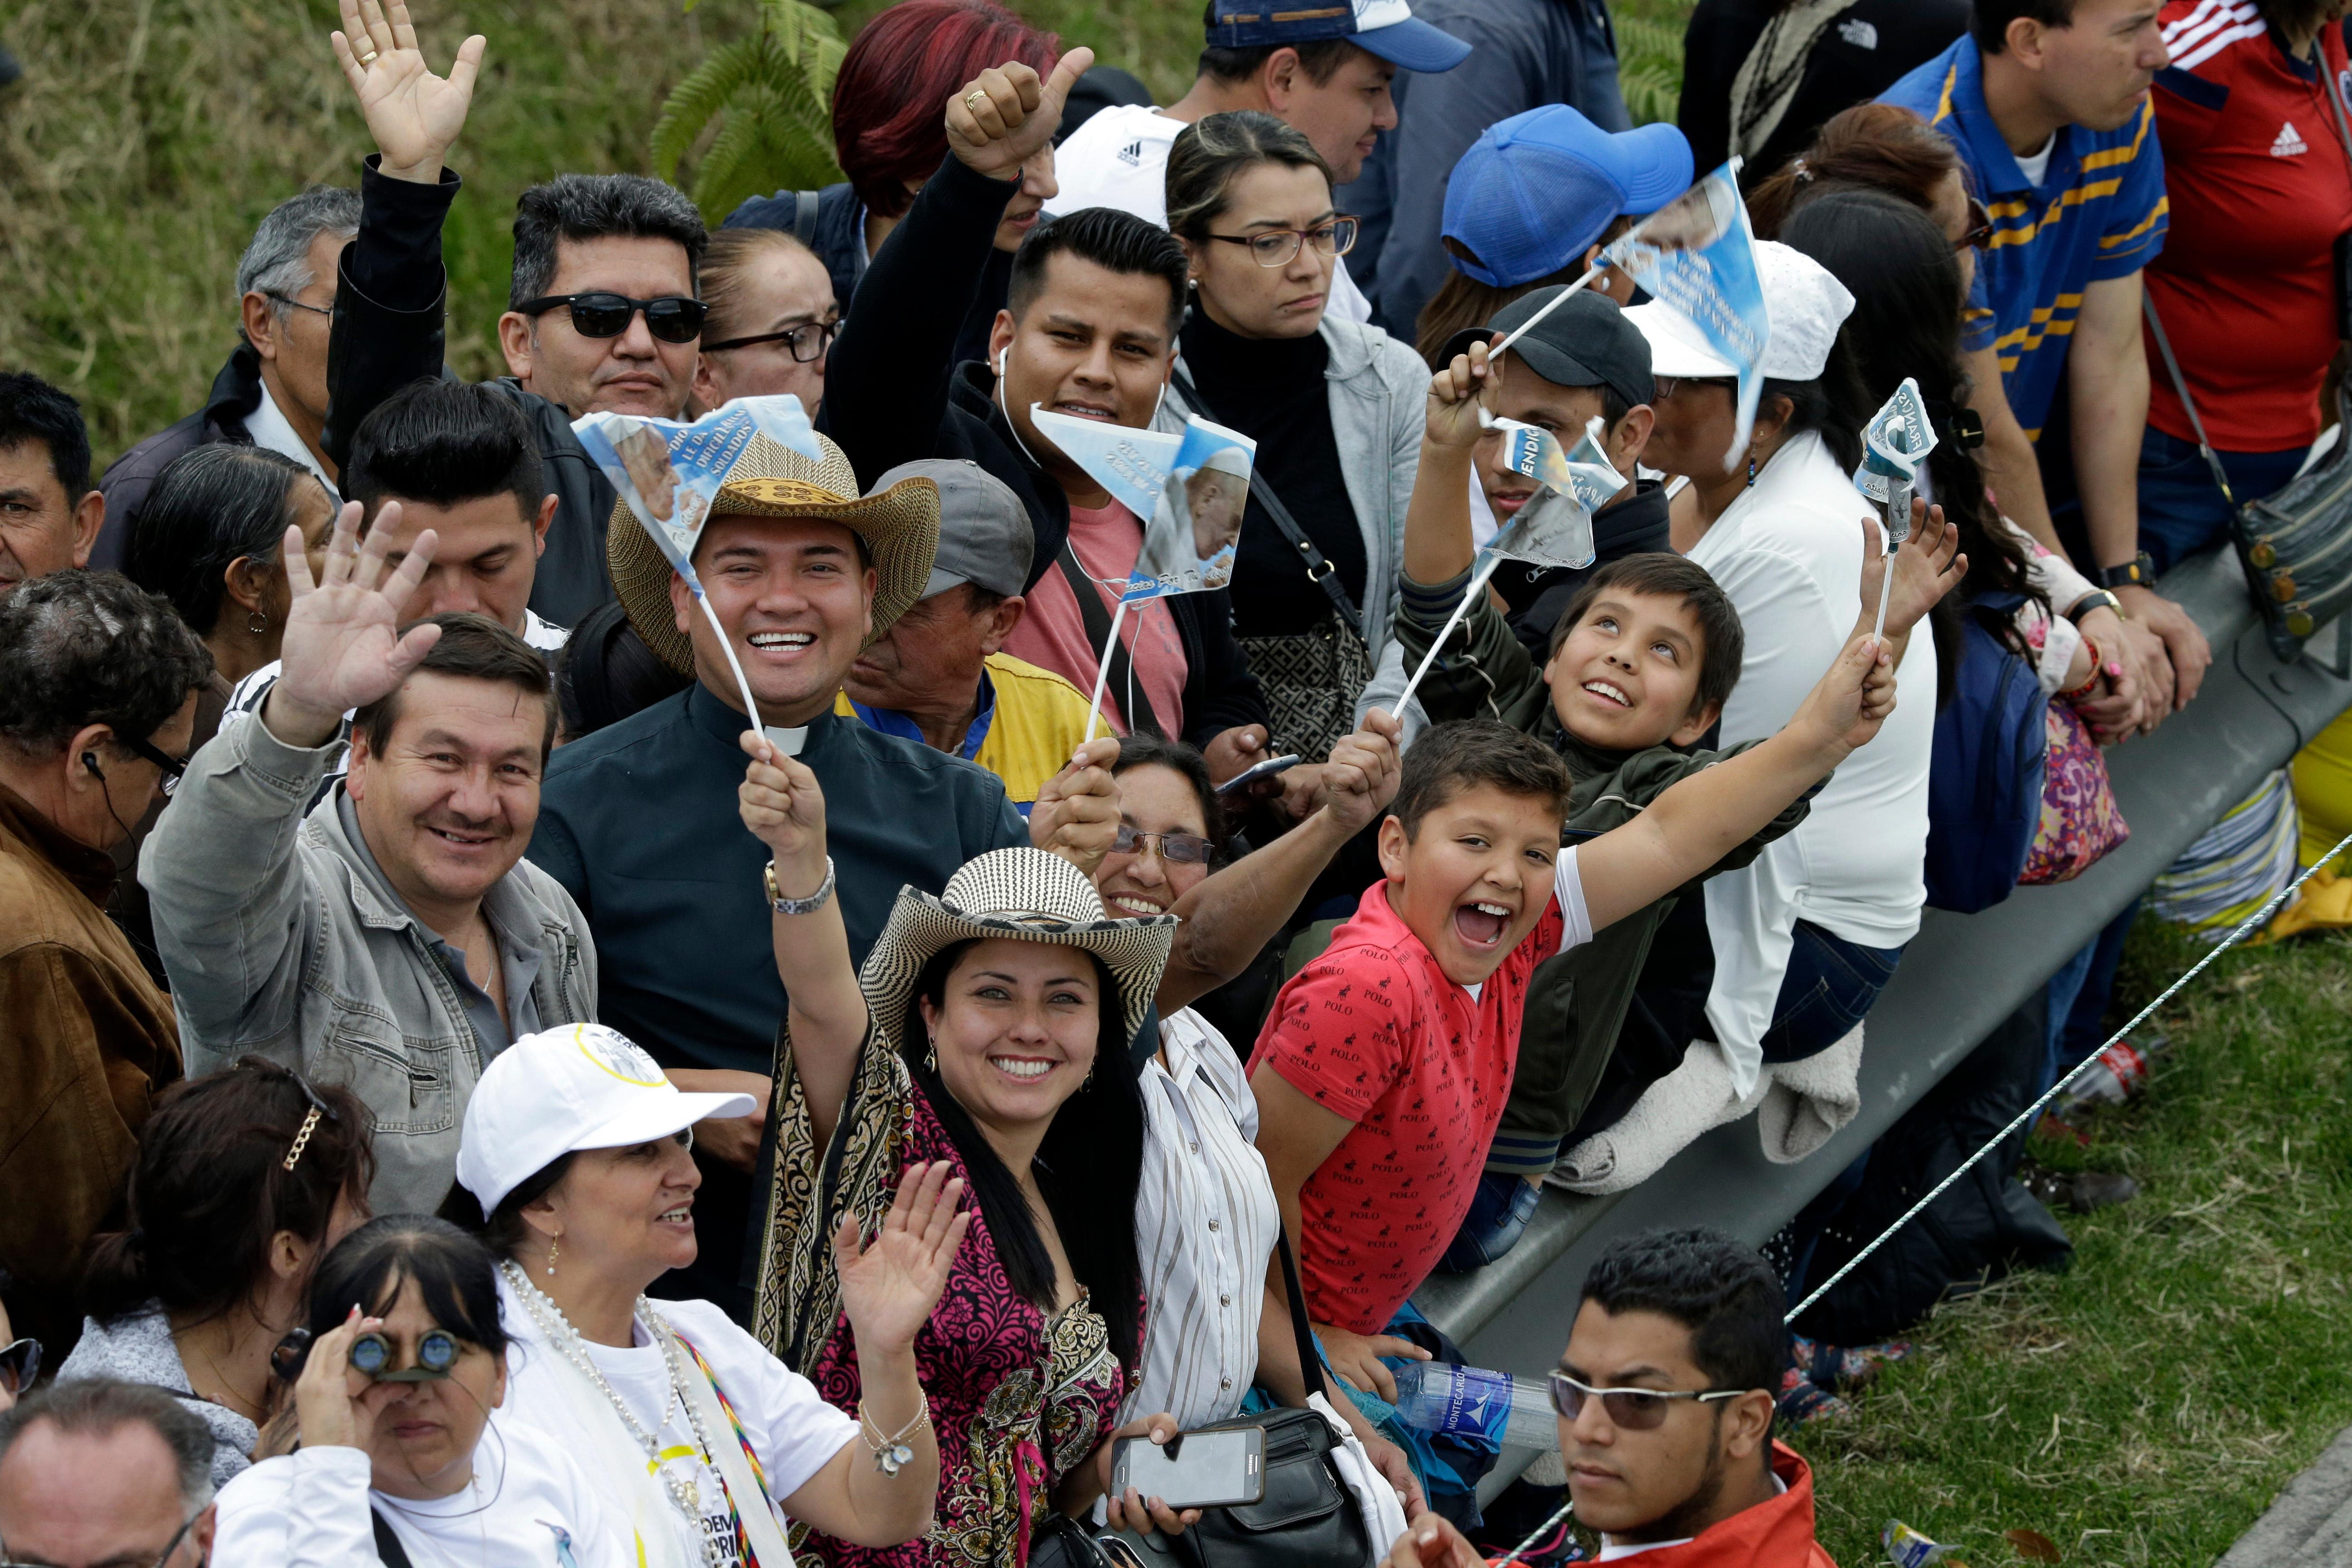 People cheer as they wait for Pope Francis to pass along the road between the airport and the Nunciatura in Bogota, Colombia, Wednesday, Sept. 6, 2017. Pope Francis has arrived in Colombia for a five-day visit. (AP Photo/Fernando Vergara)